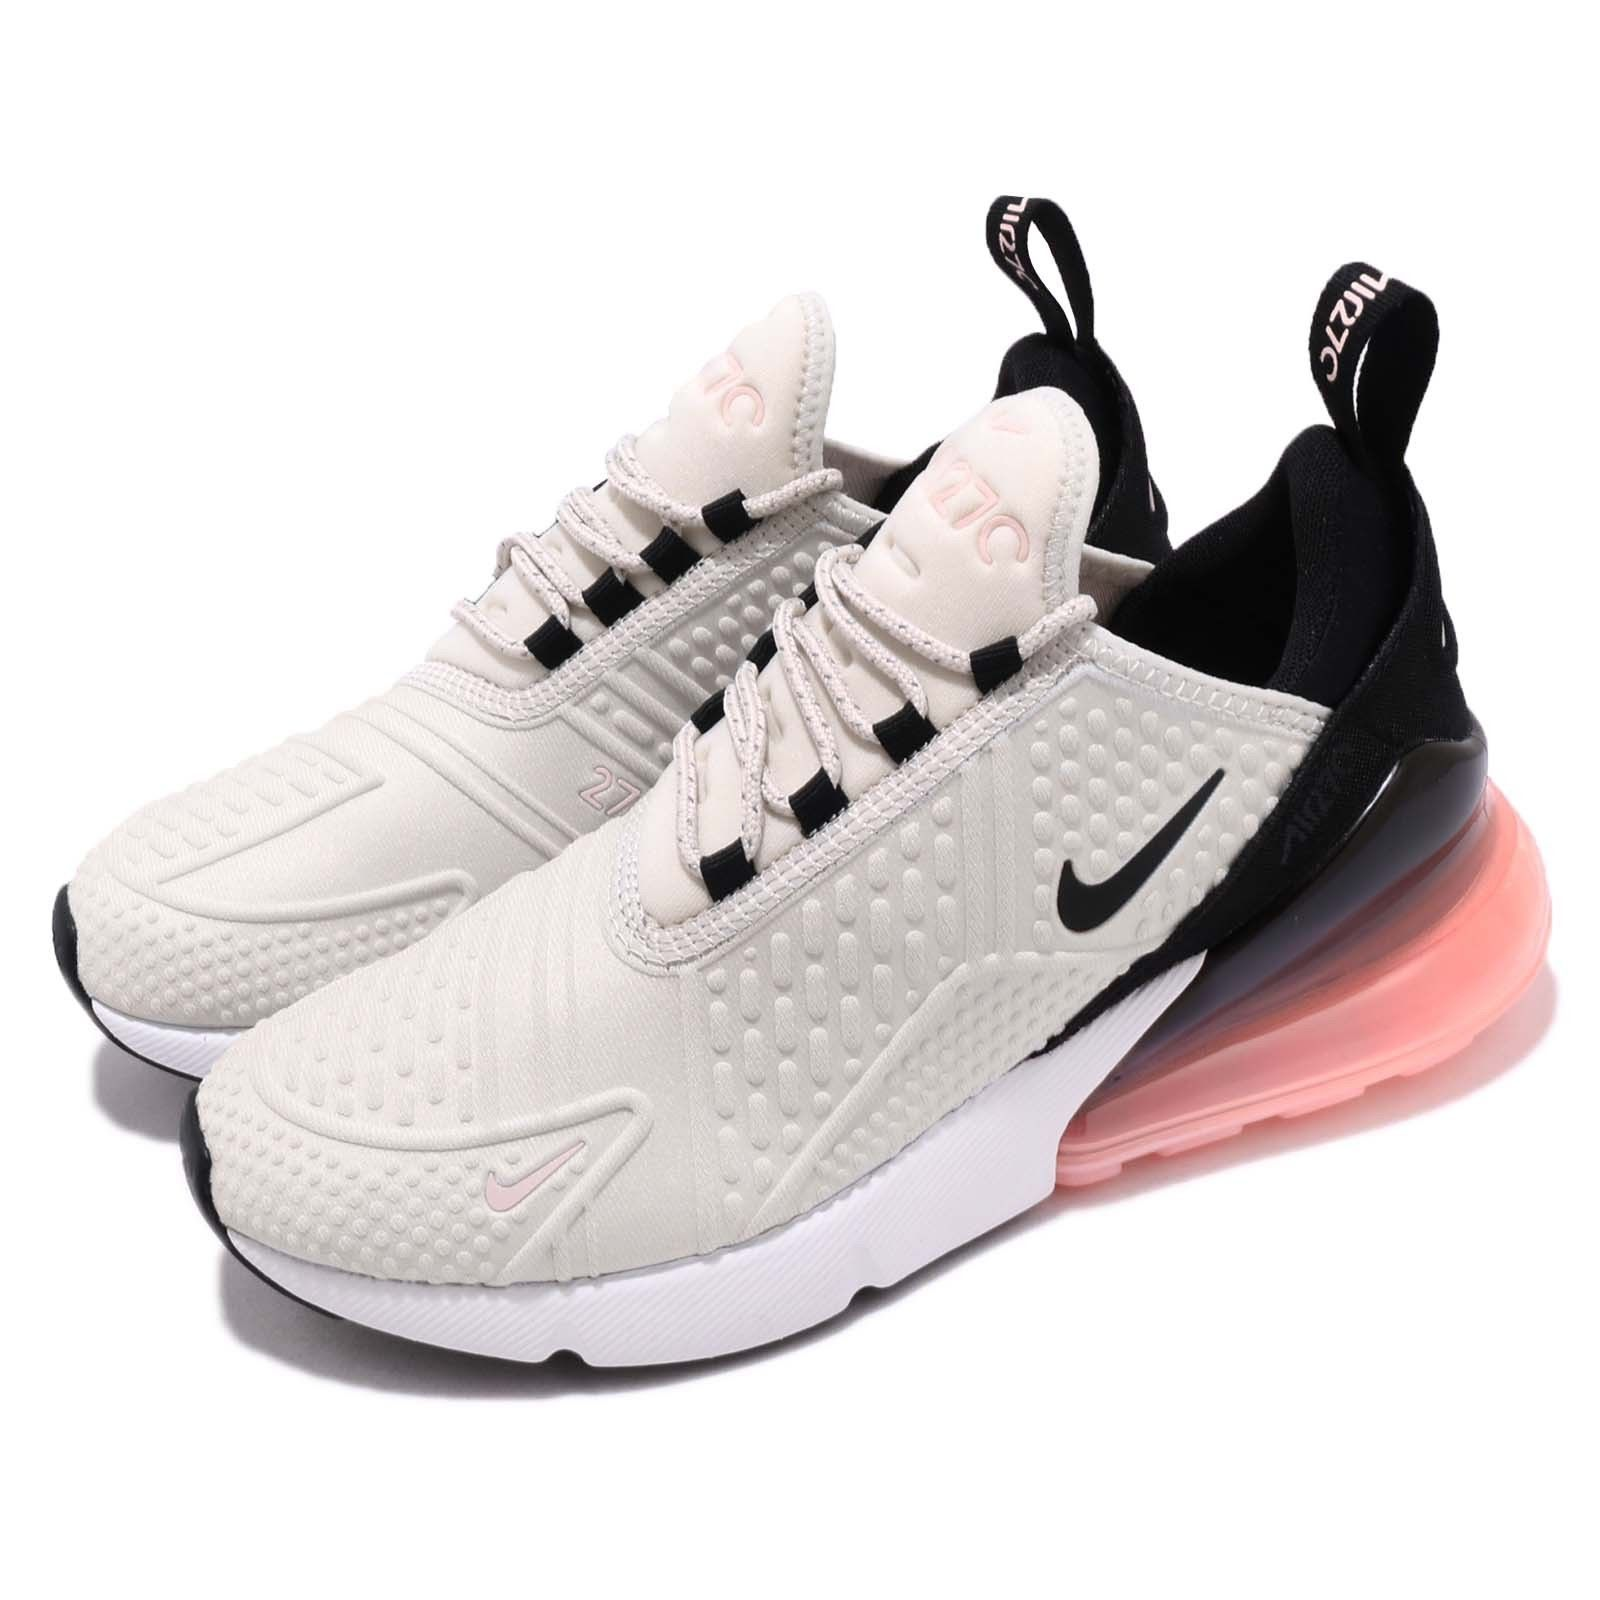 Wmns Nike Air Max 270 SE 'Storm Pink' For Womens Size